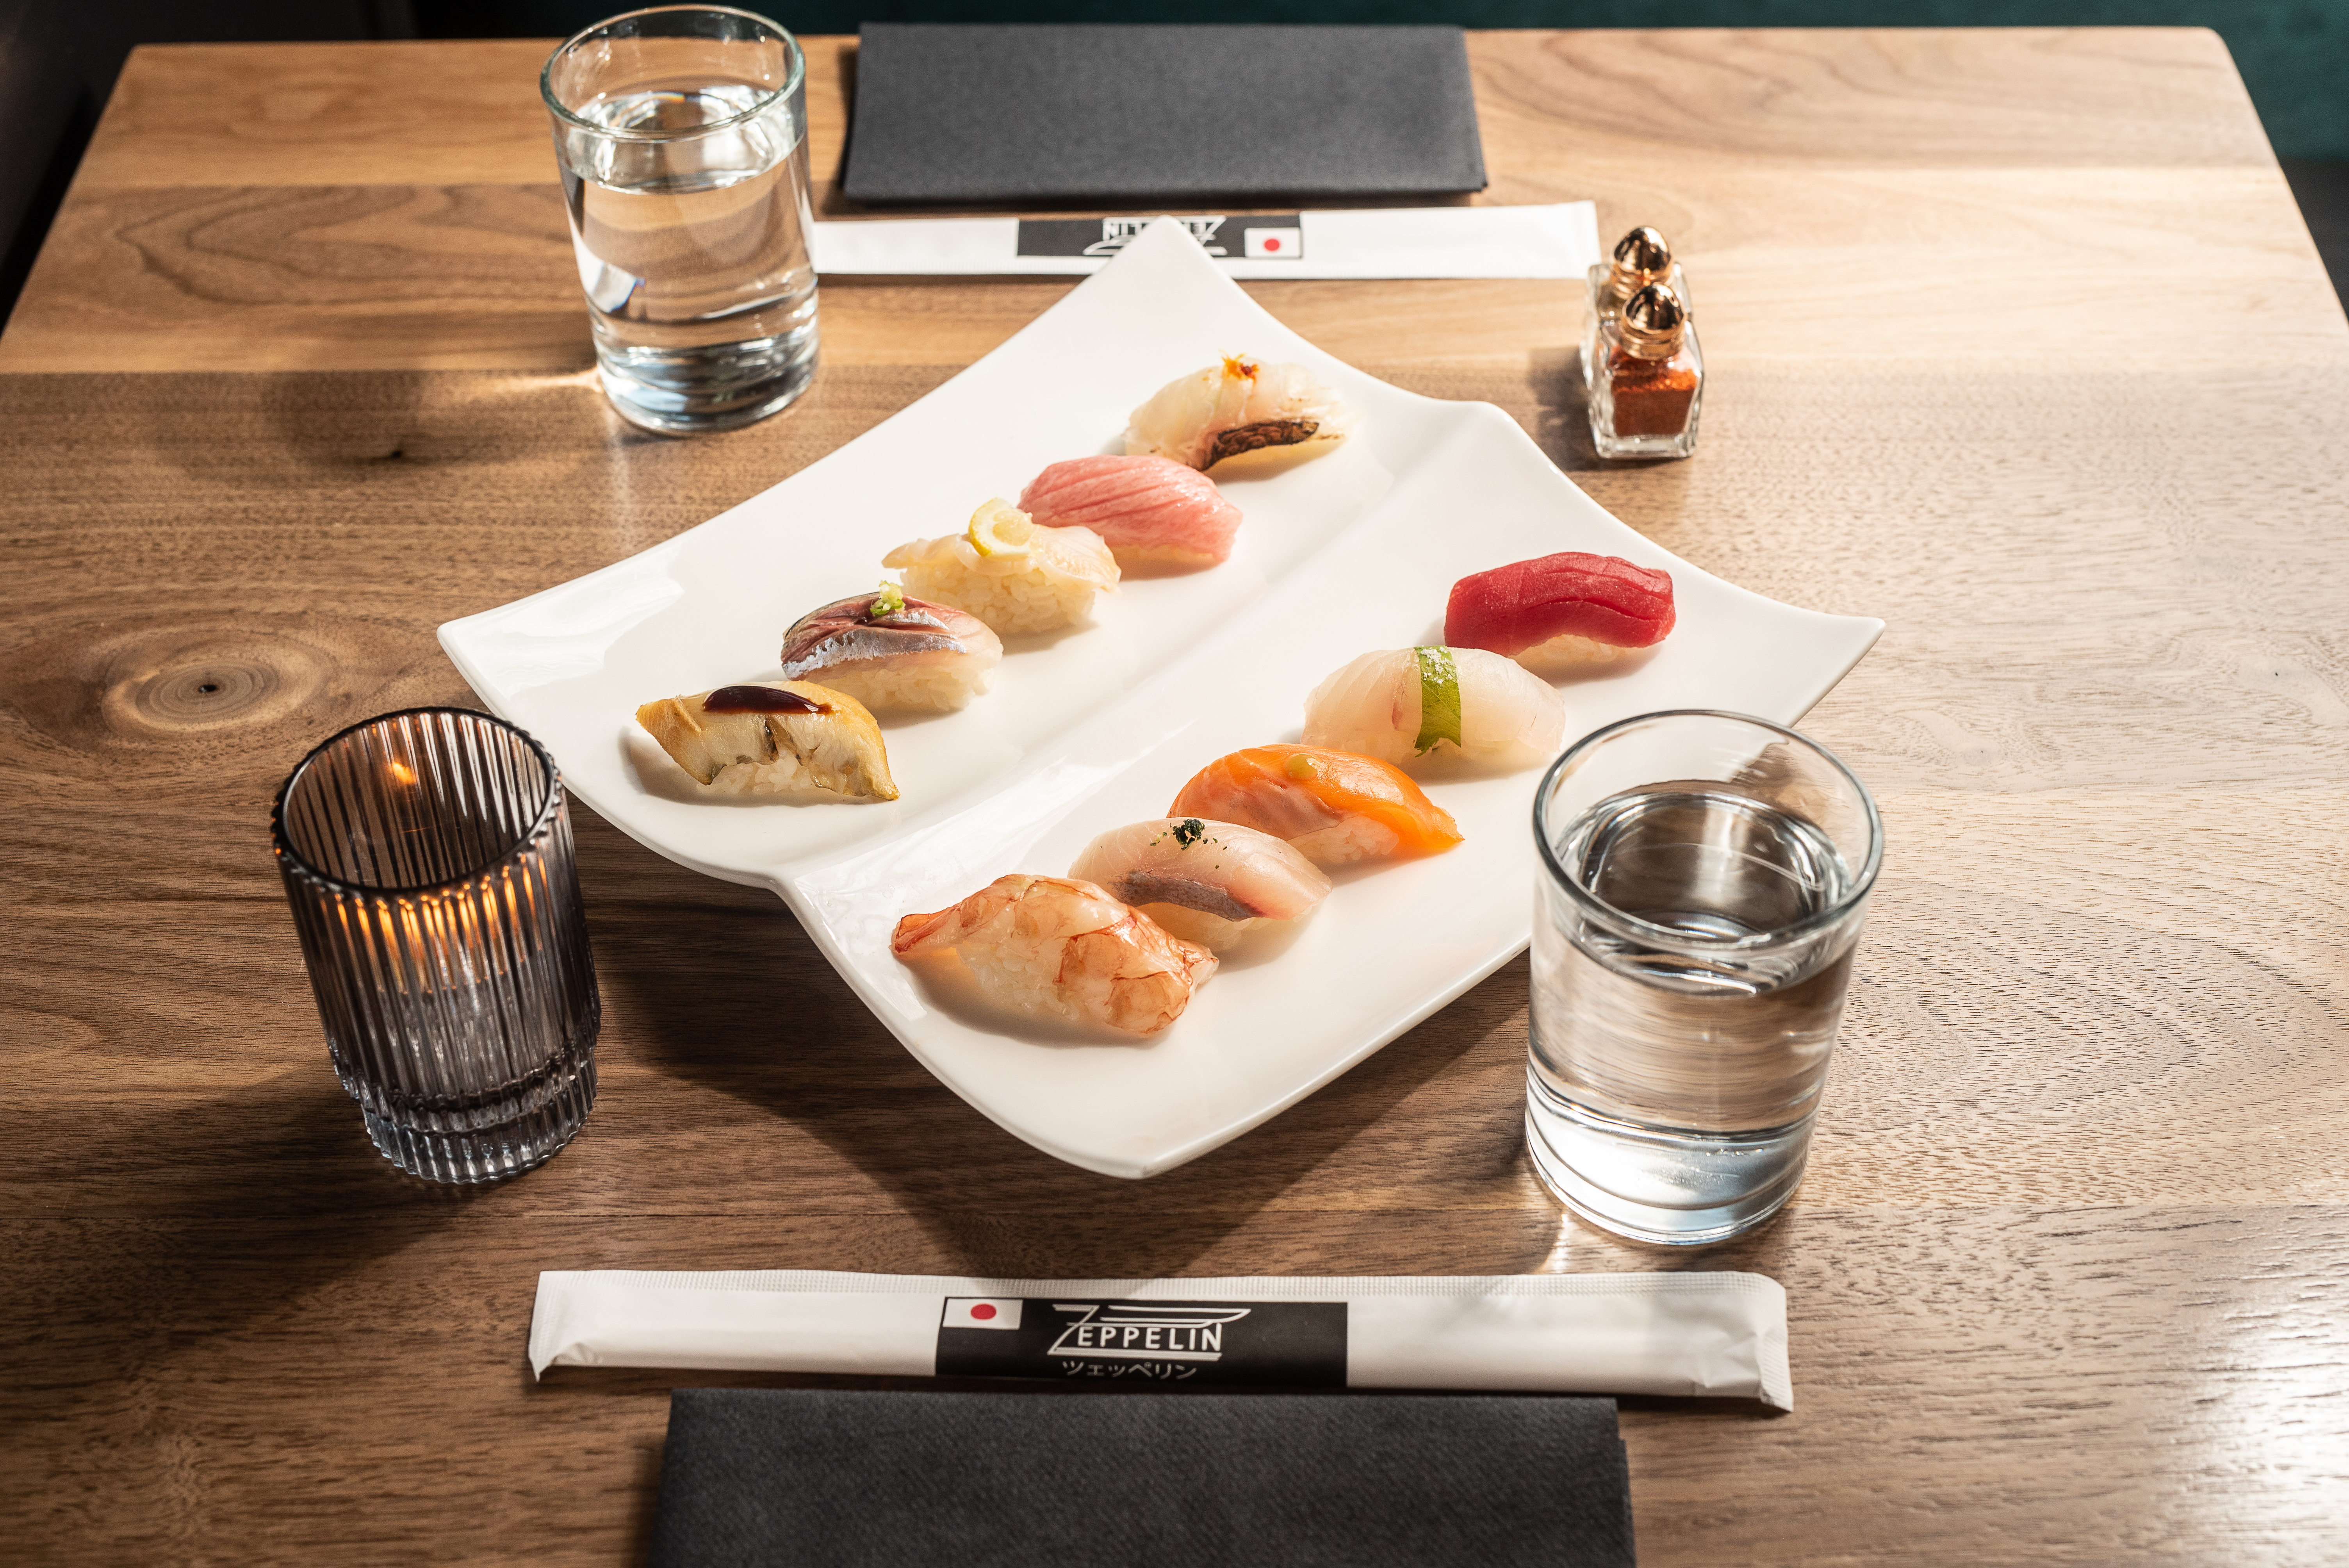 At this brand new Japanese street food and omakase restaurant in the heart of Shaw, the sushi options are fantastic. (Image: Robert Fairbairn/Zeppelin)